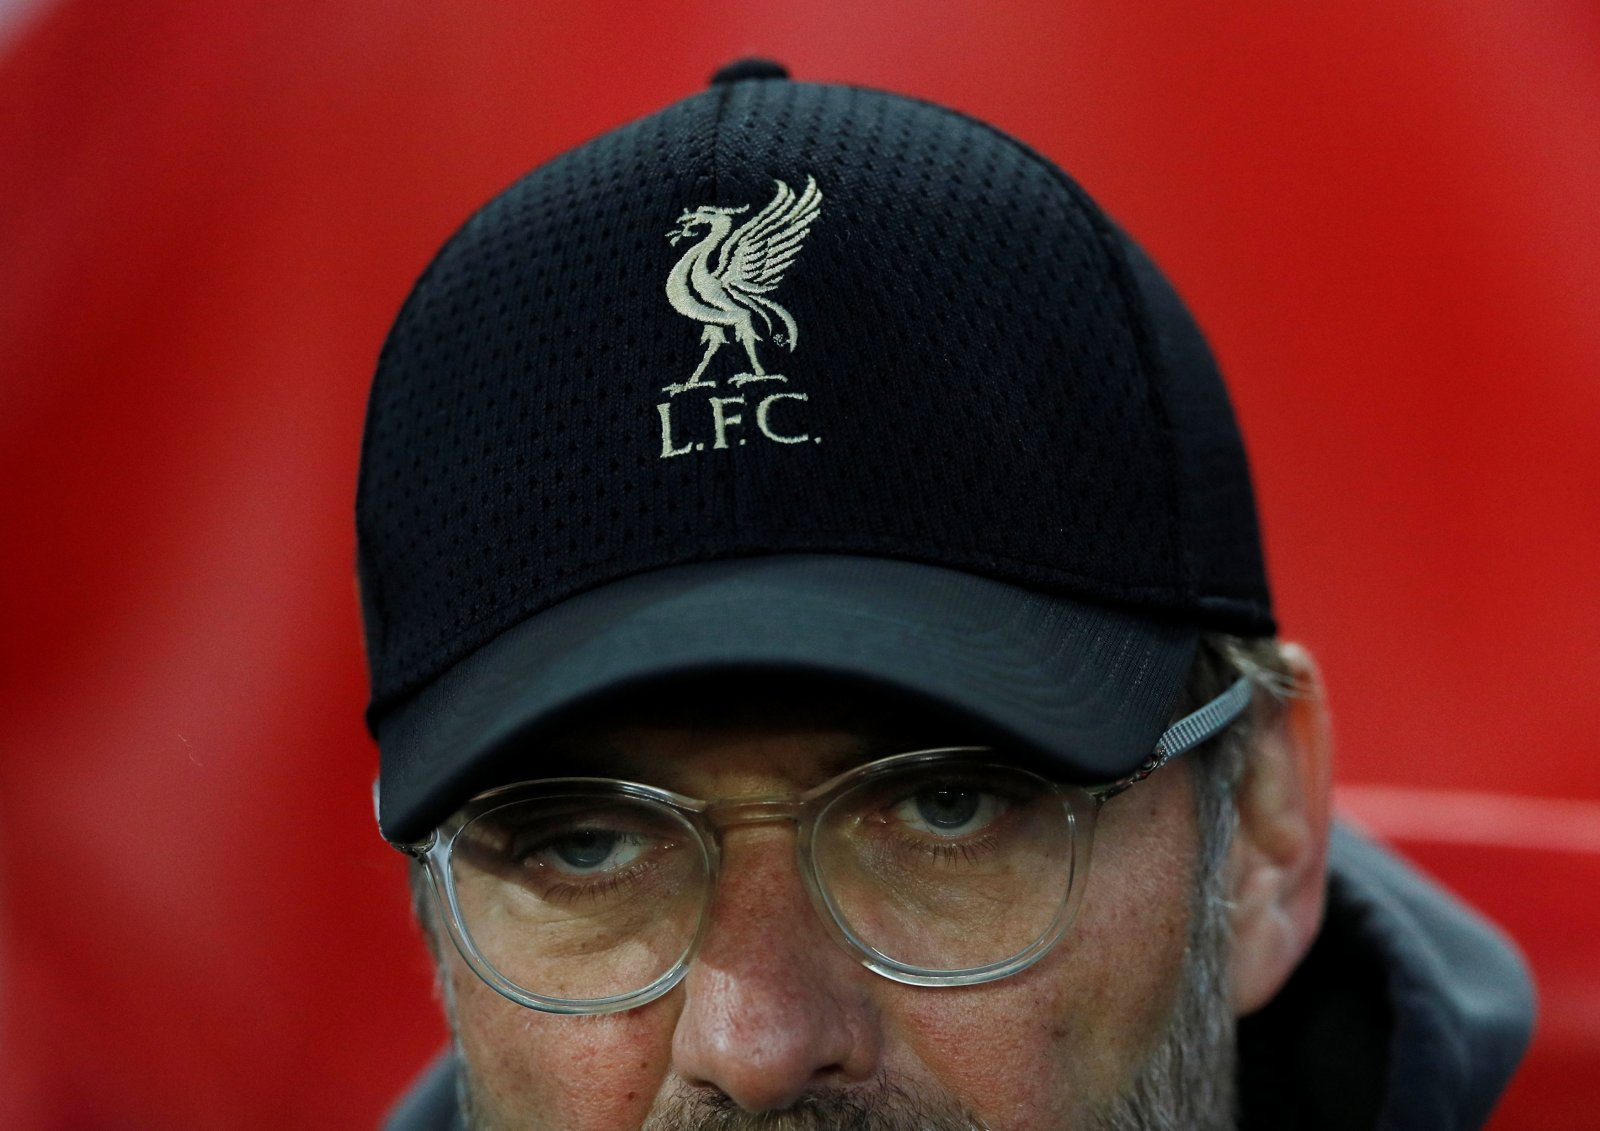 Liverpool: Jurgen Klopp must be careful with rotation as key games approach